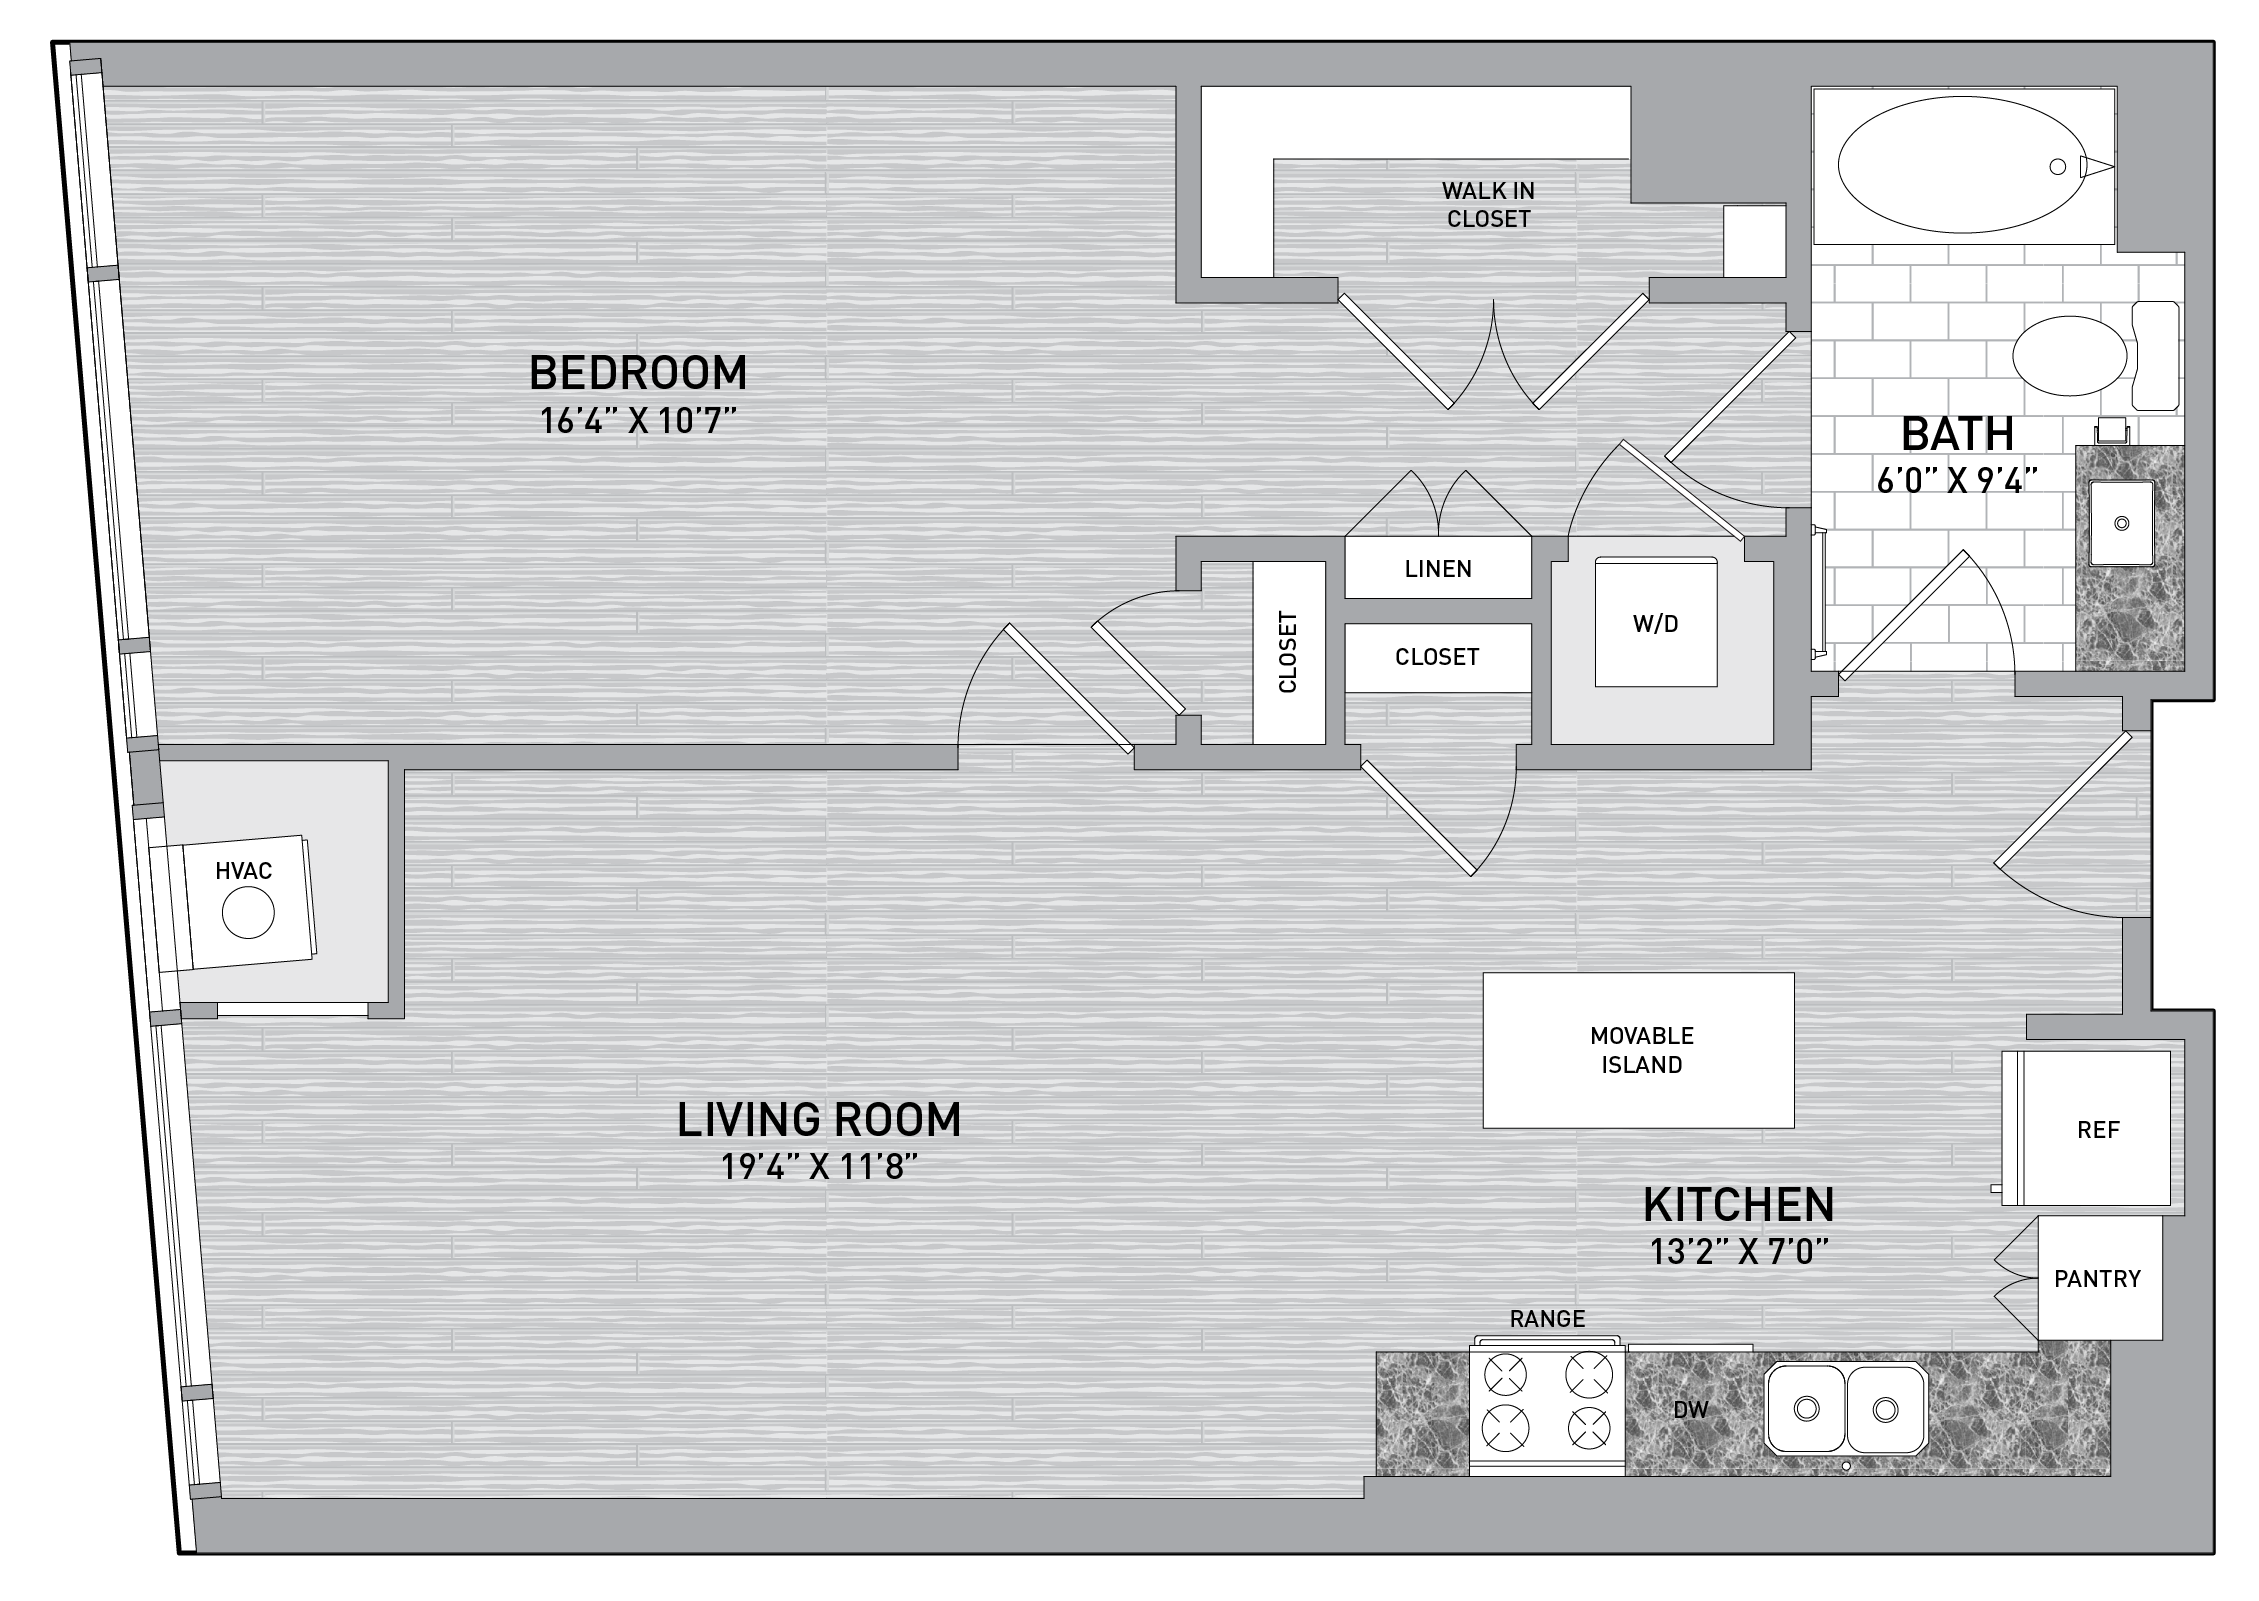 floorplan image of unit id 0924